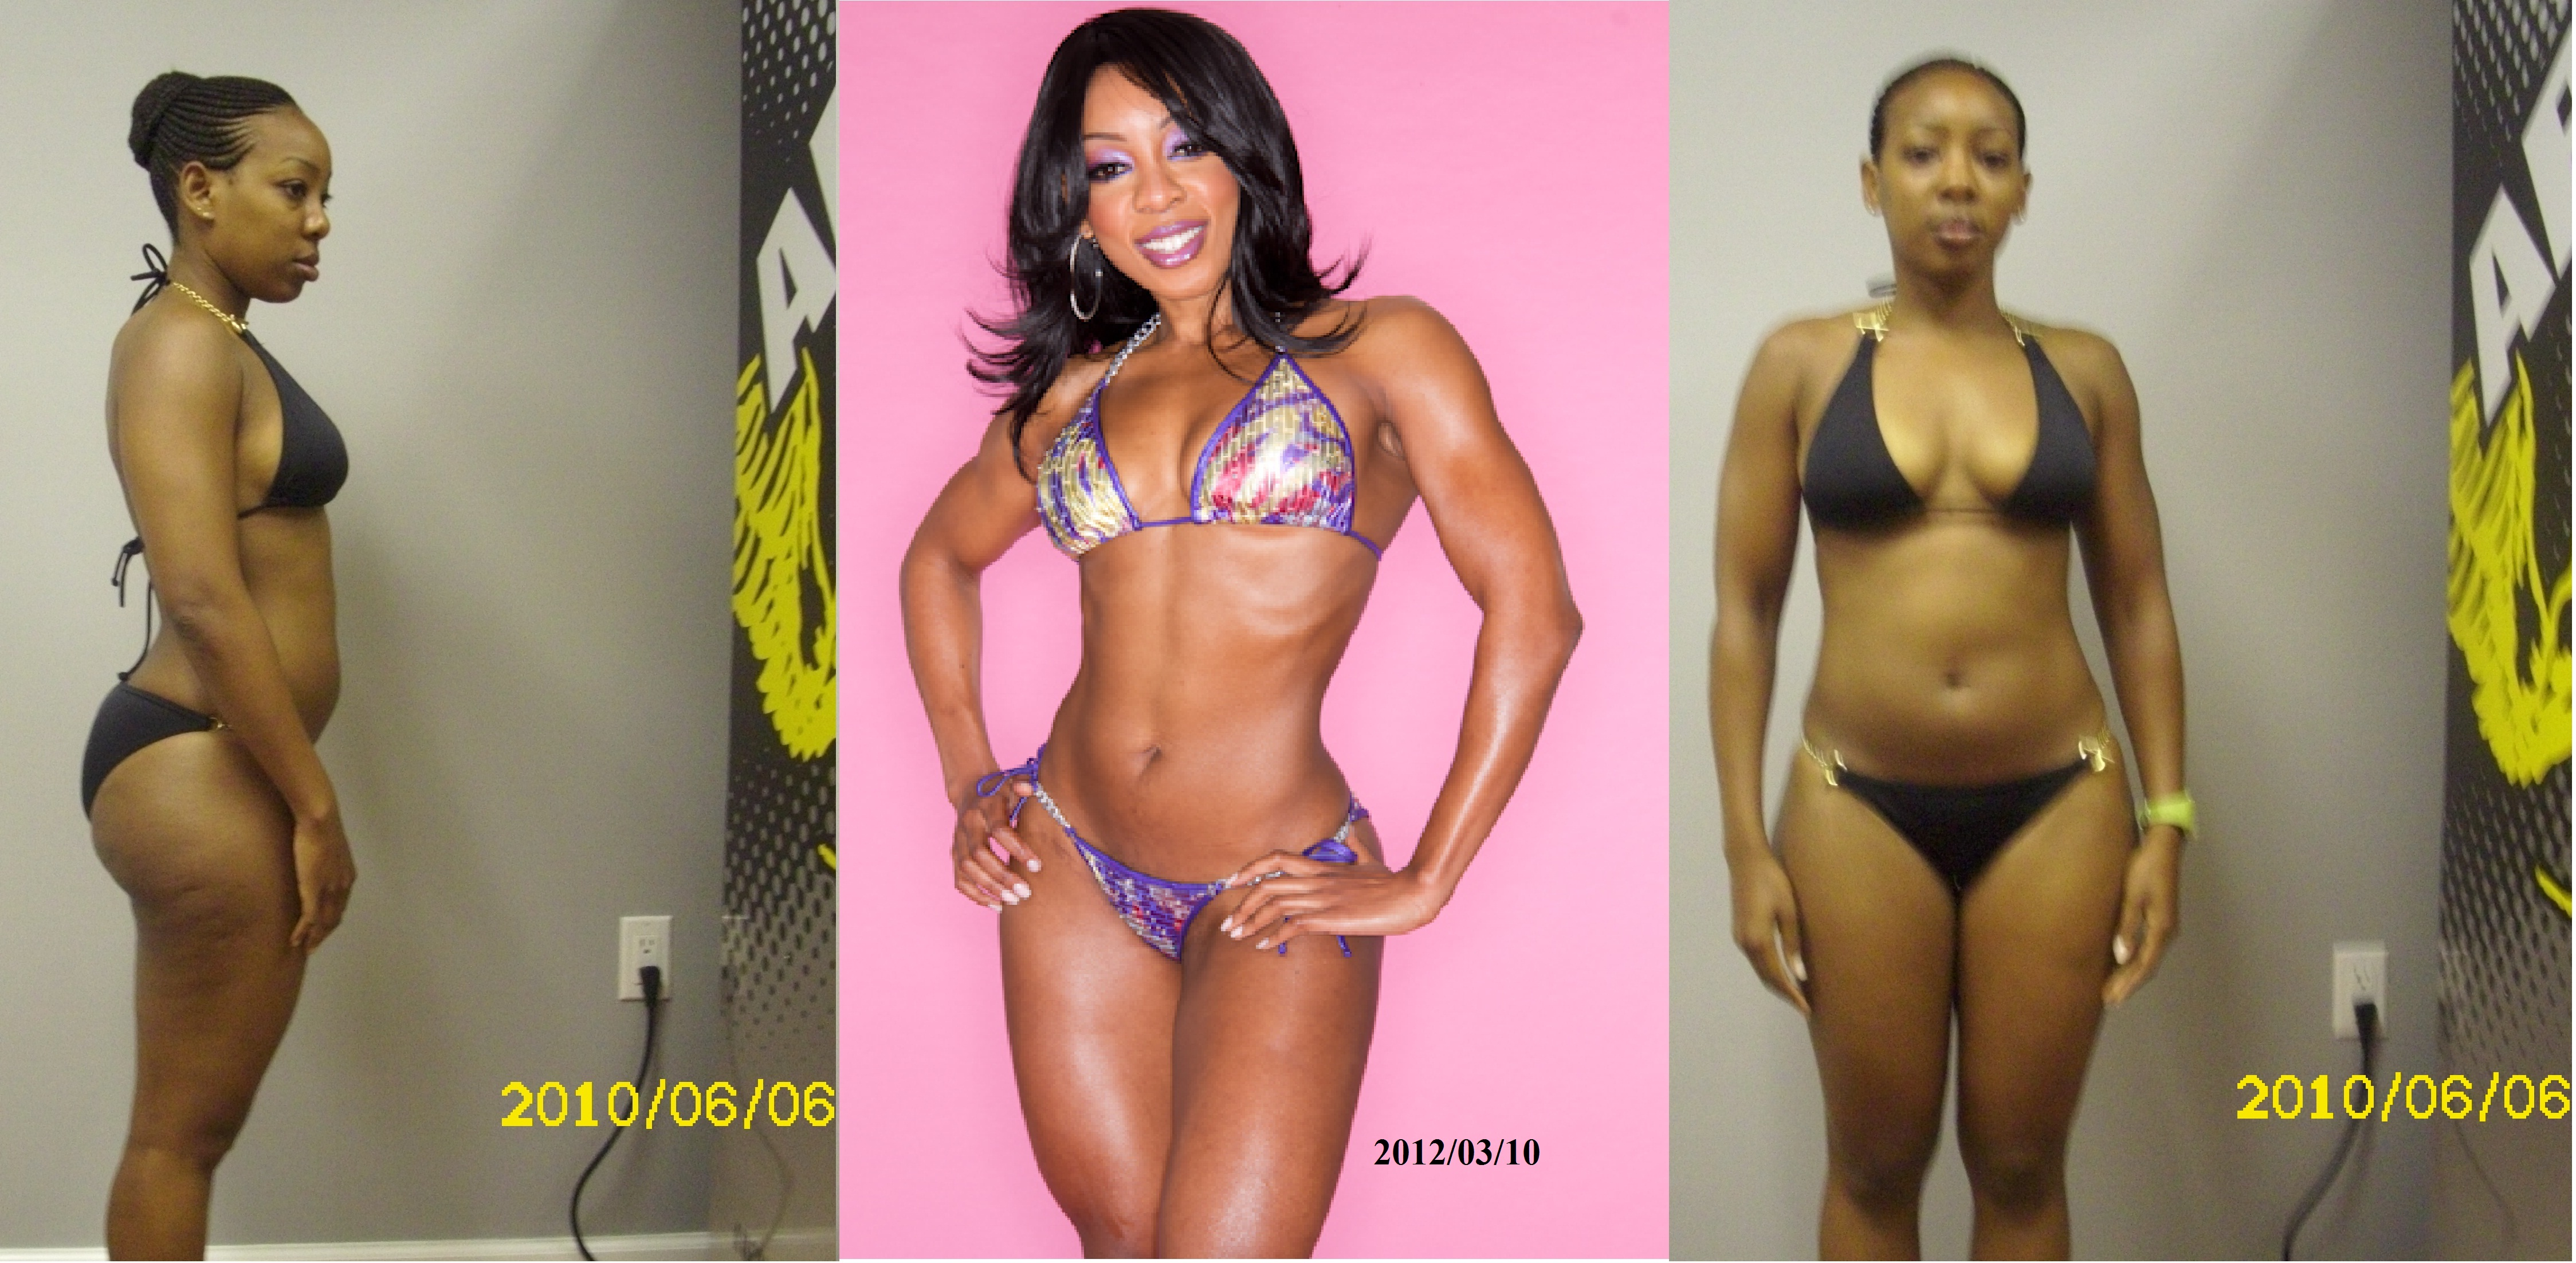 Women Abs Before And After Got the results i desired!